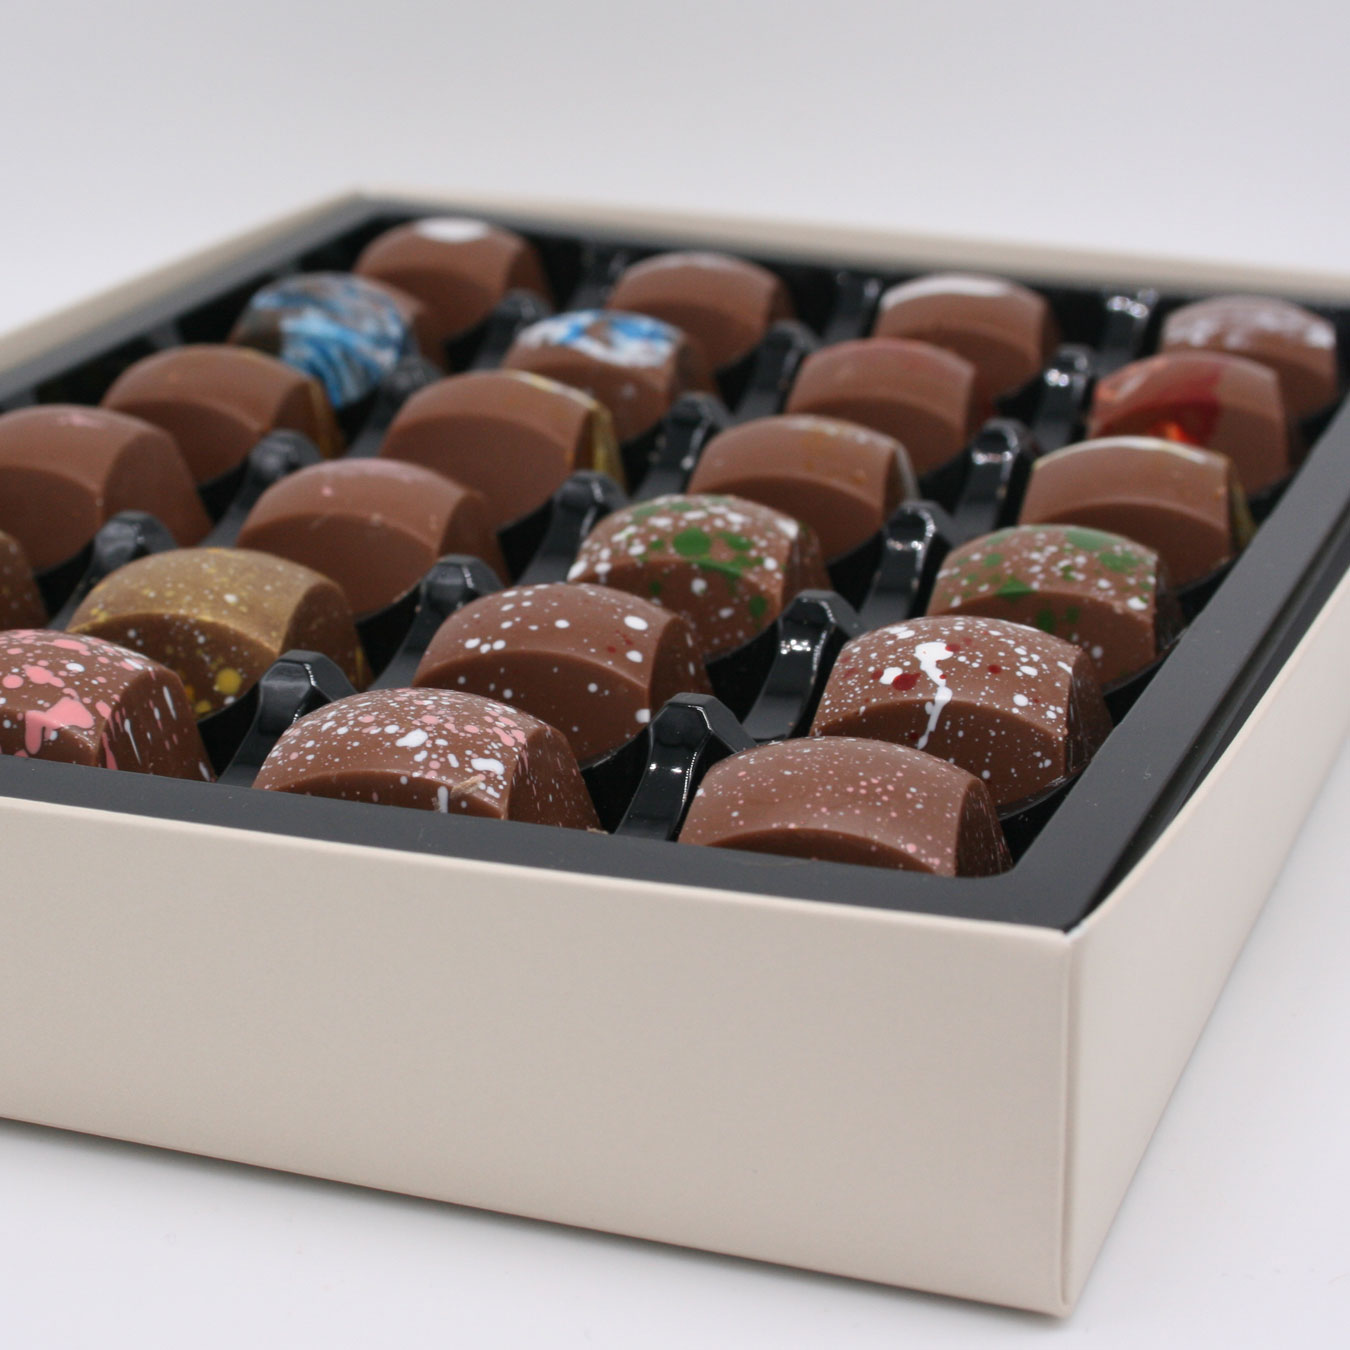 milk collection of milk chocholate rocky road